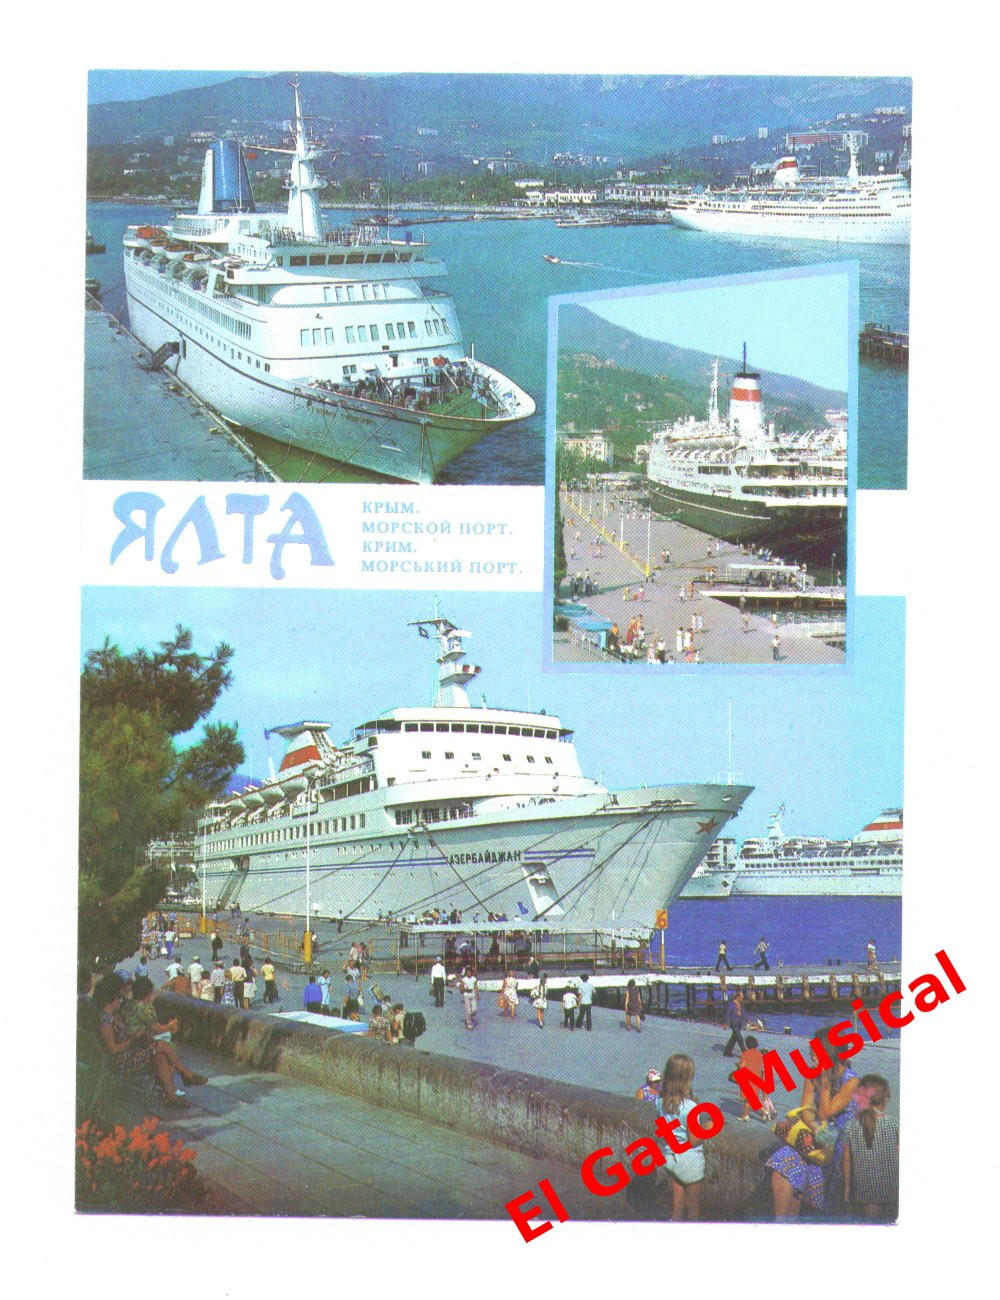 USSR Soviet Russian Postcard - SeaPort Yalta Crimea 1980s